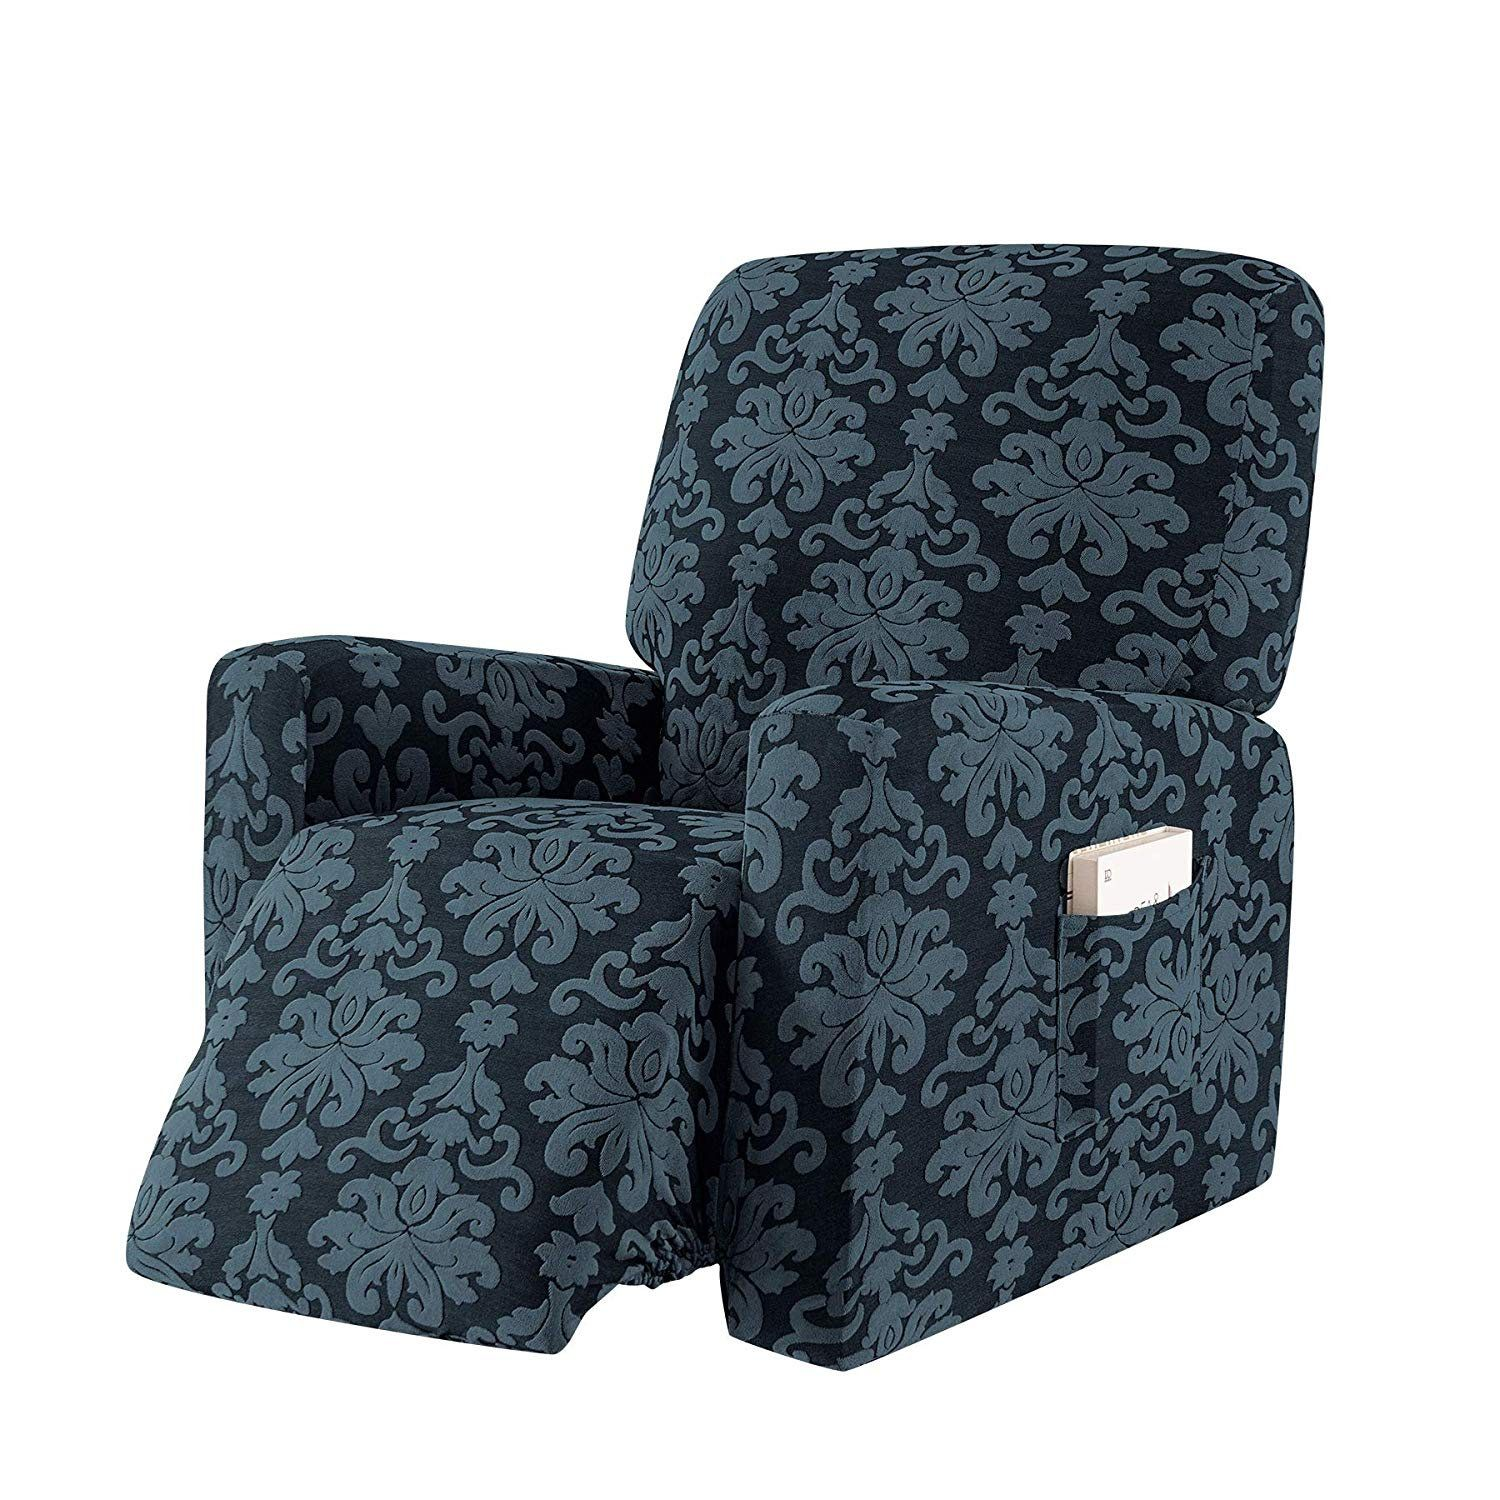 Subrtex 1Piece Elegant Jacquard Recliner Chair Cover